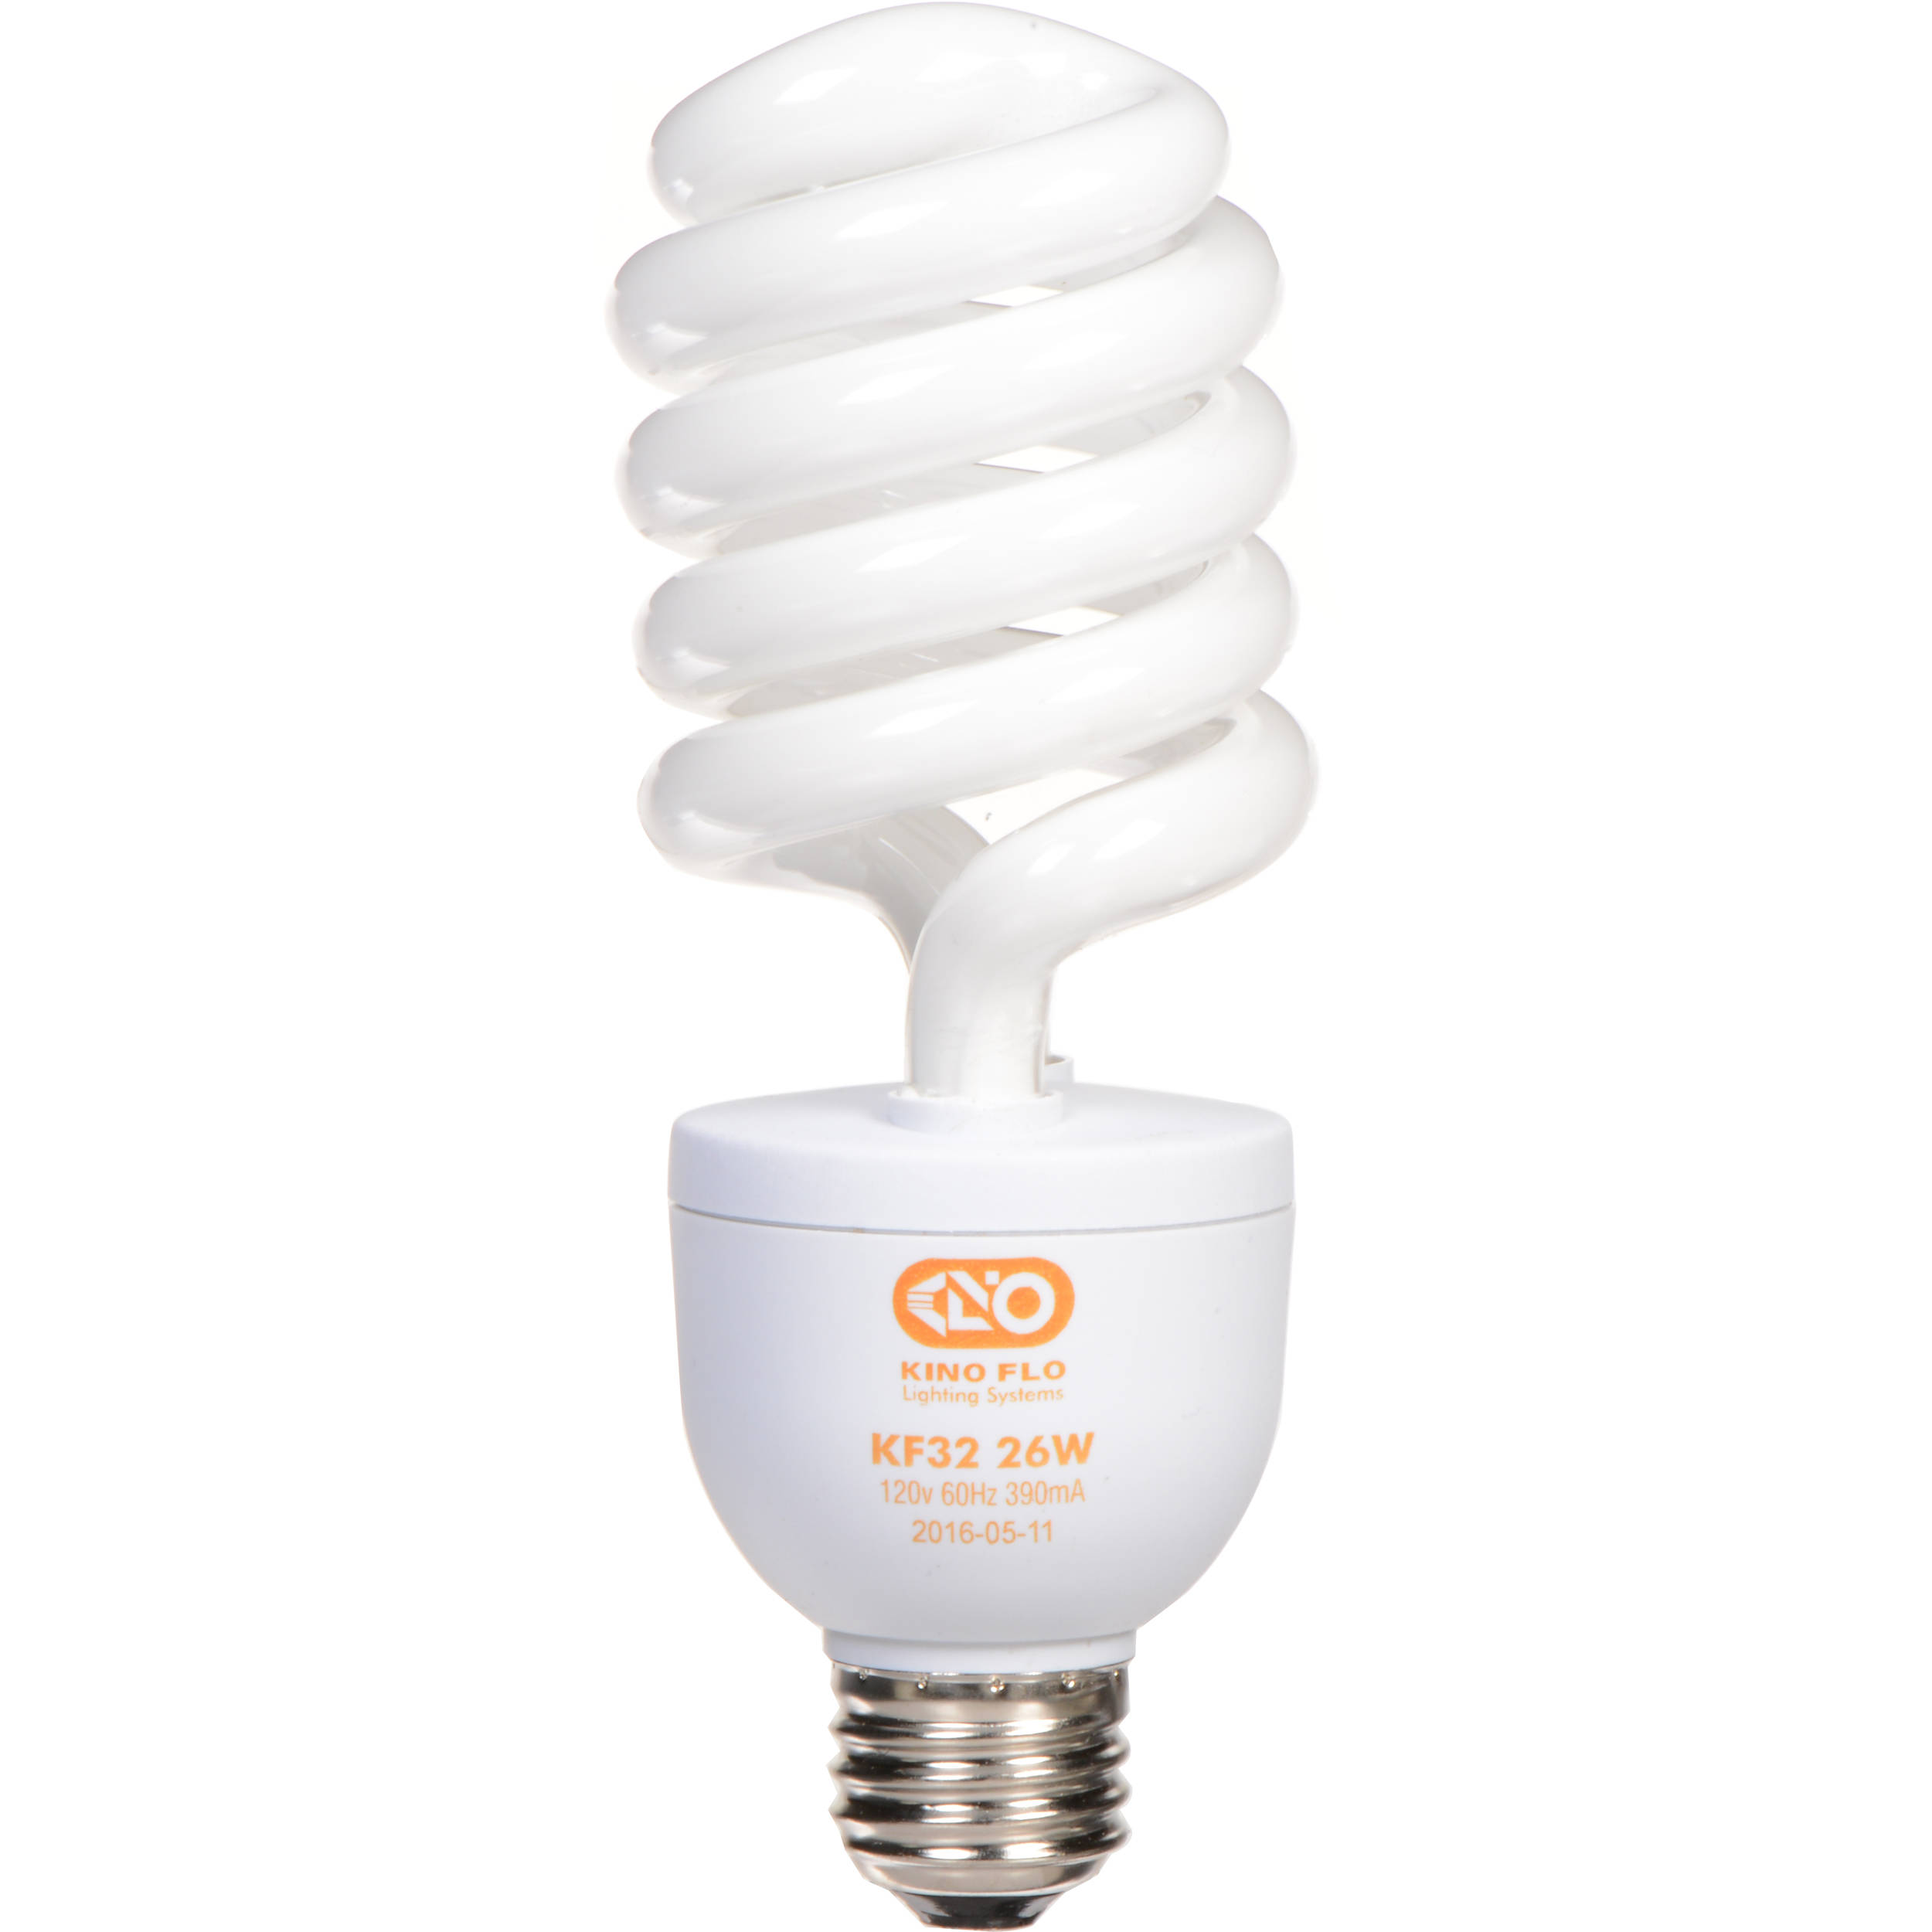 zoom compact pin watt four or base to item fluorescent light bulb hover with click